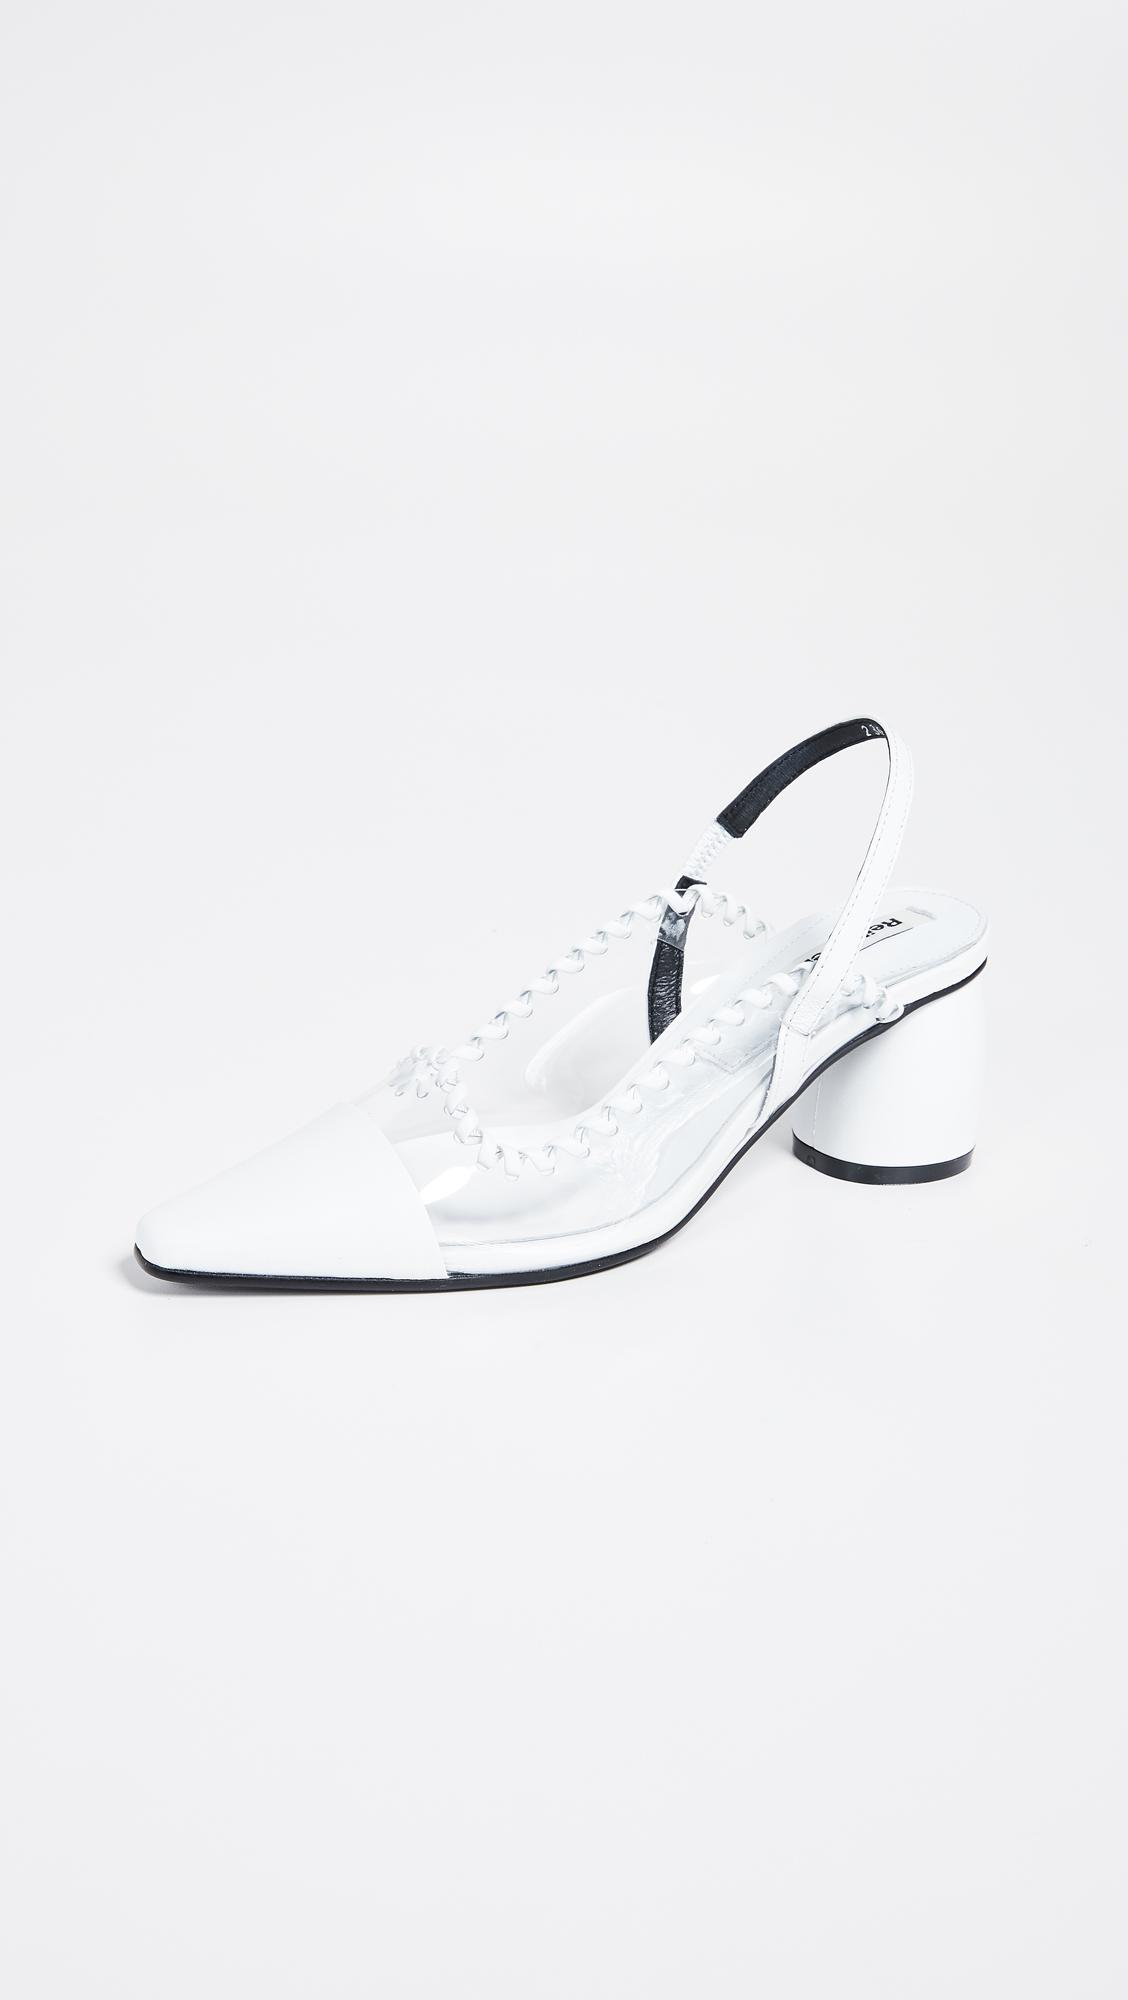 4180ed55abc Lyst - Reike Nen Pvc Curved Middle Slingback Pumps in White